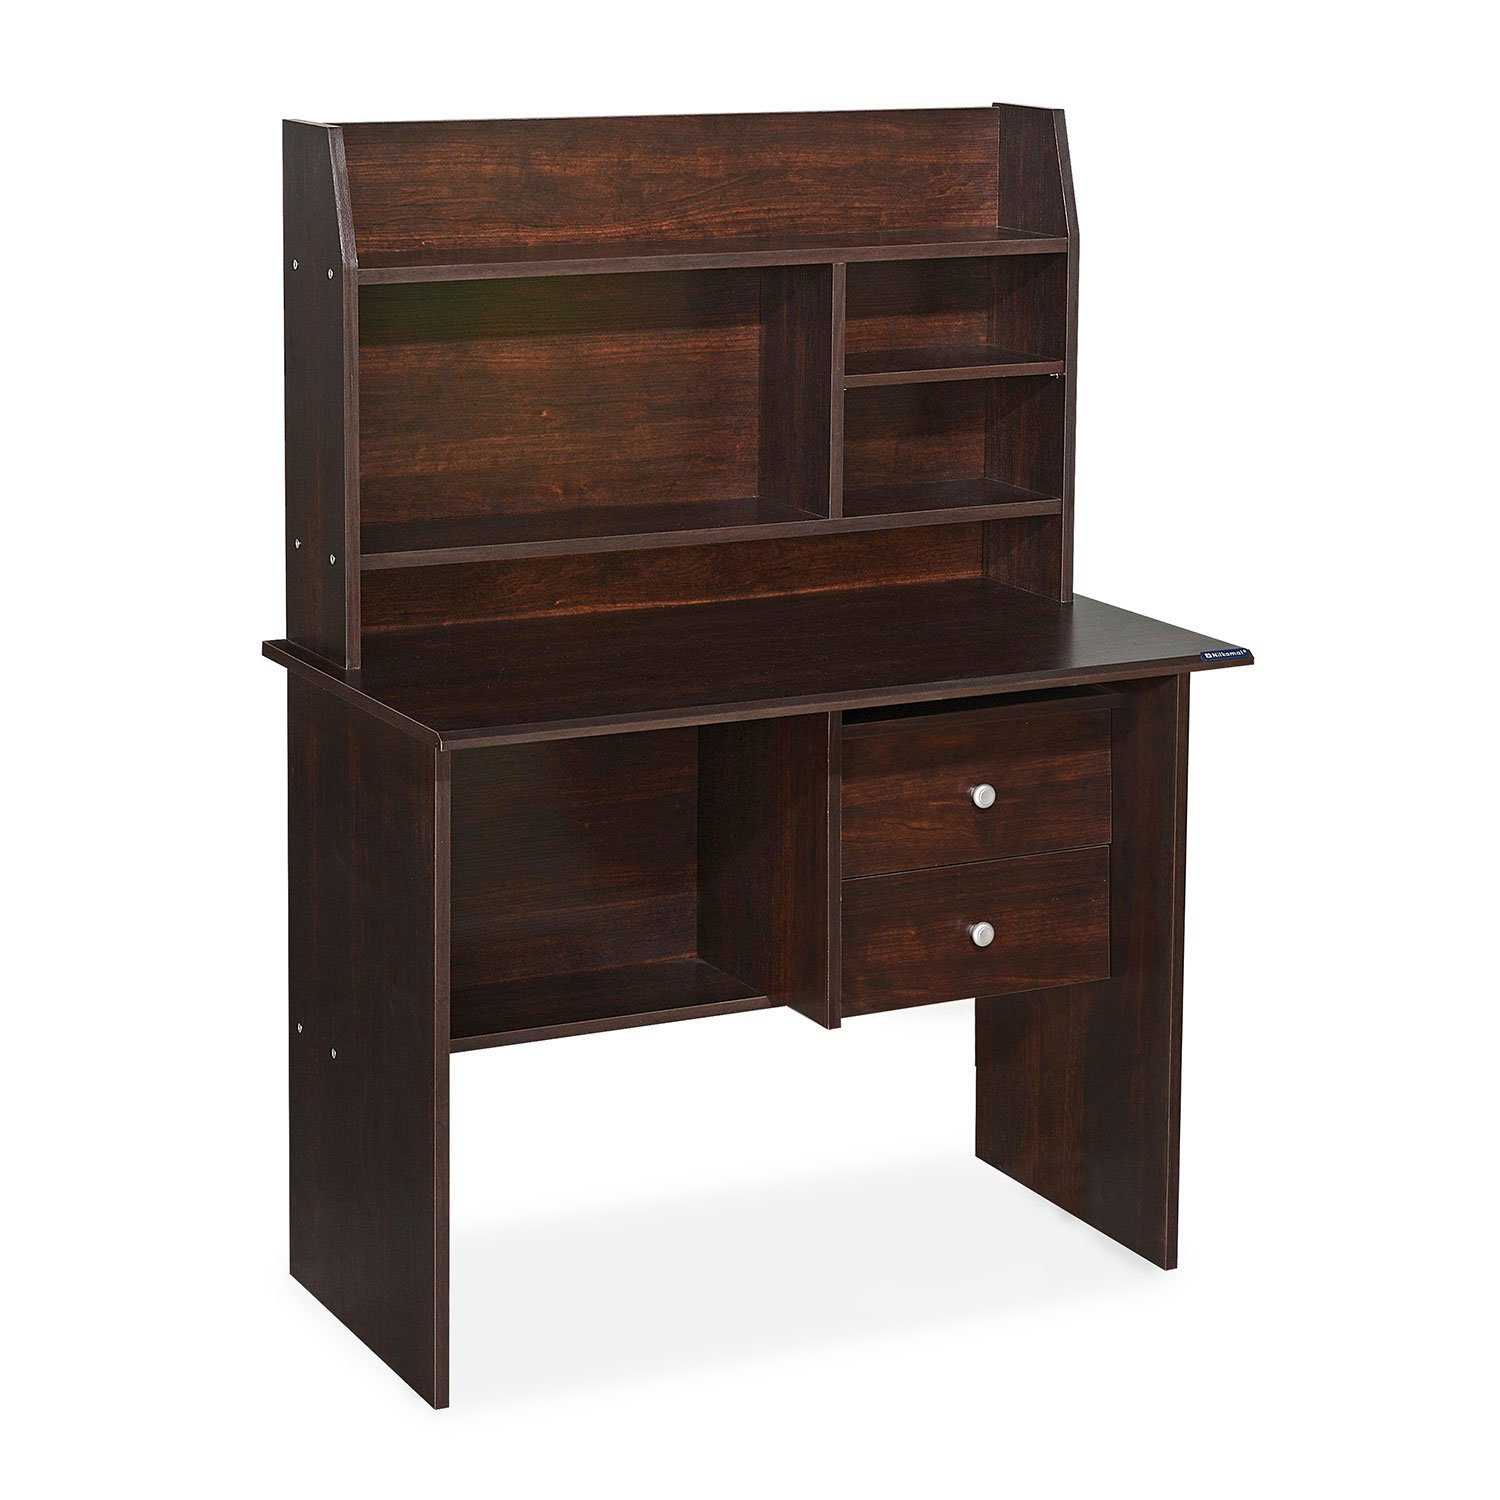 Nilkamal Daffny Study Table or Office Table (Walnut) - Furnishkart.com